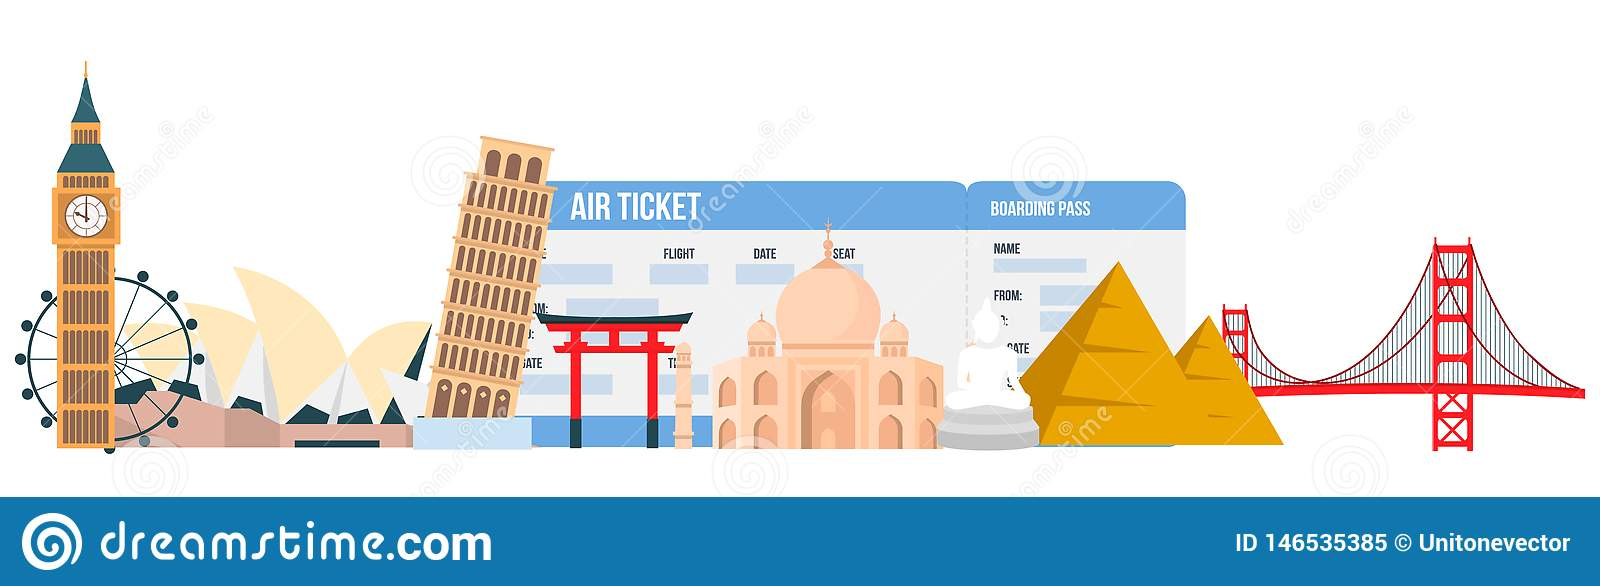 World Famous Landmarks Vector Design Elements